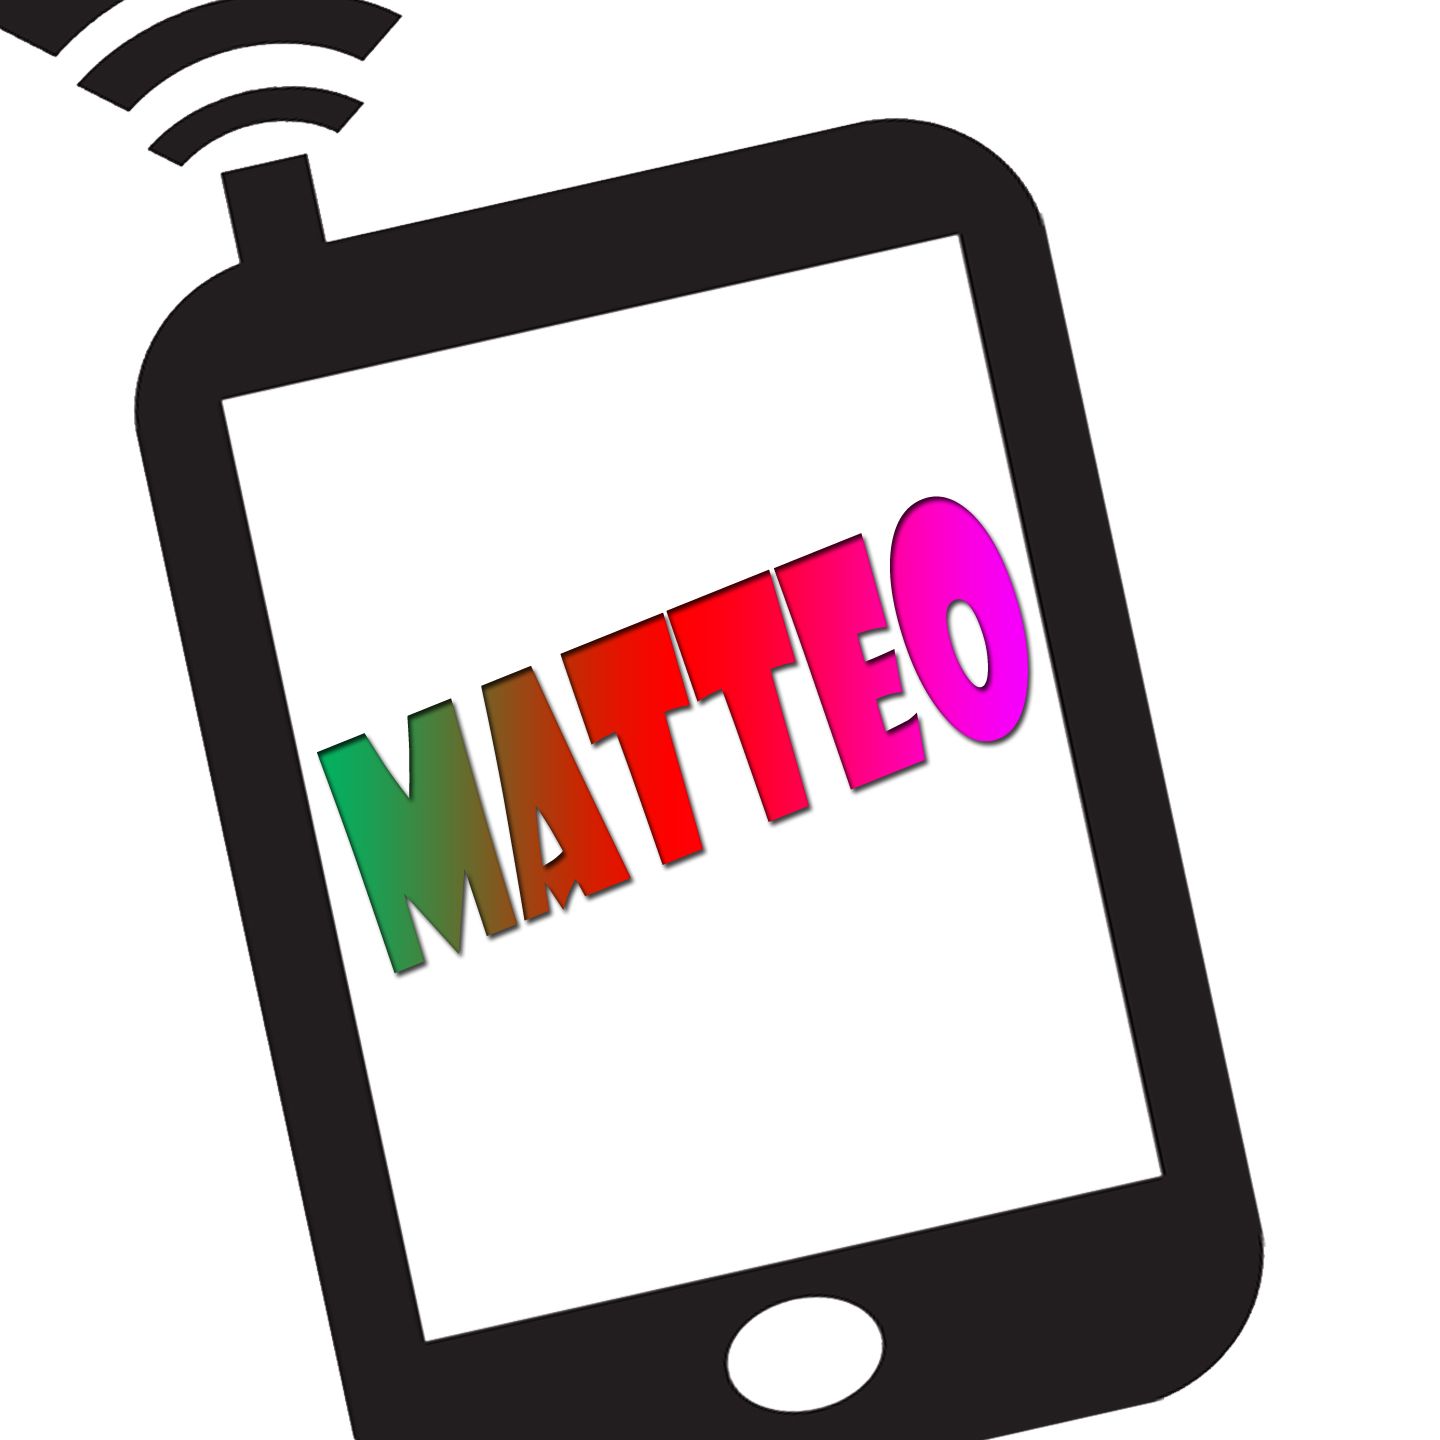 Matteo is calling you